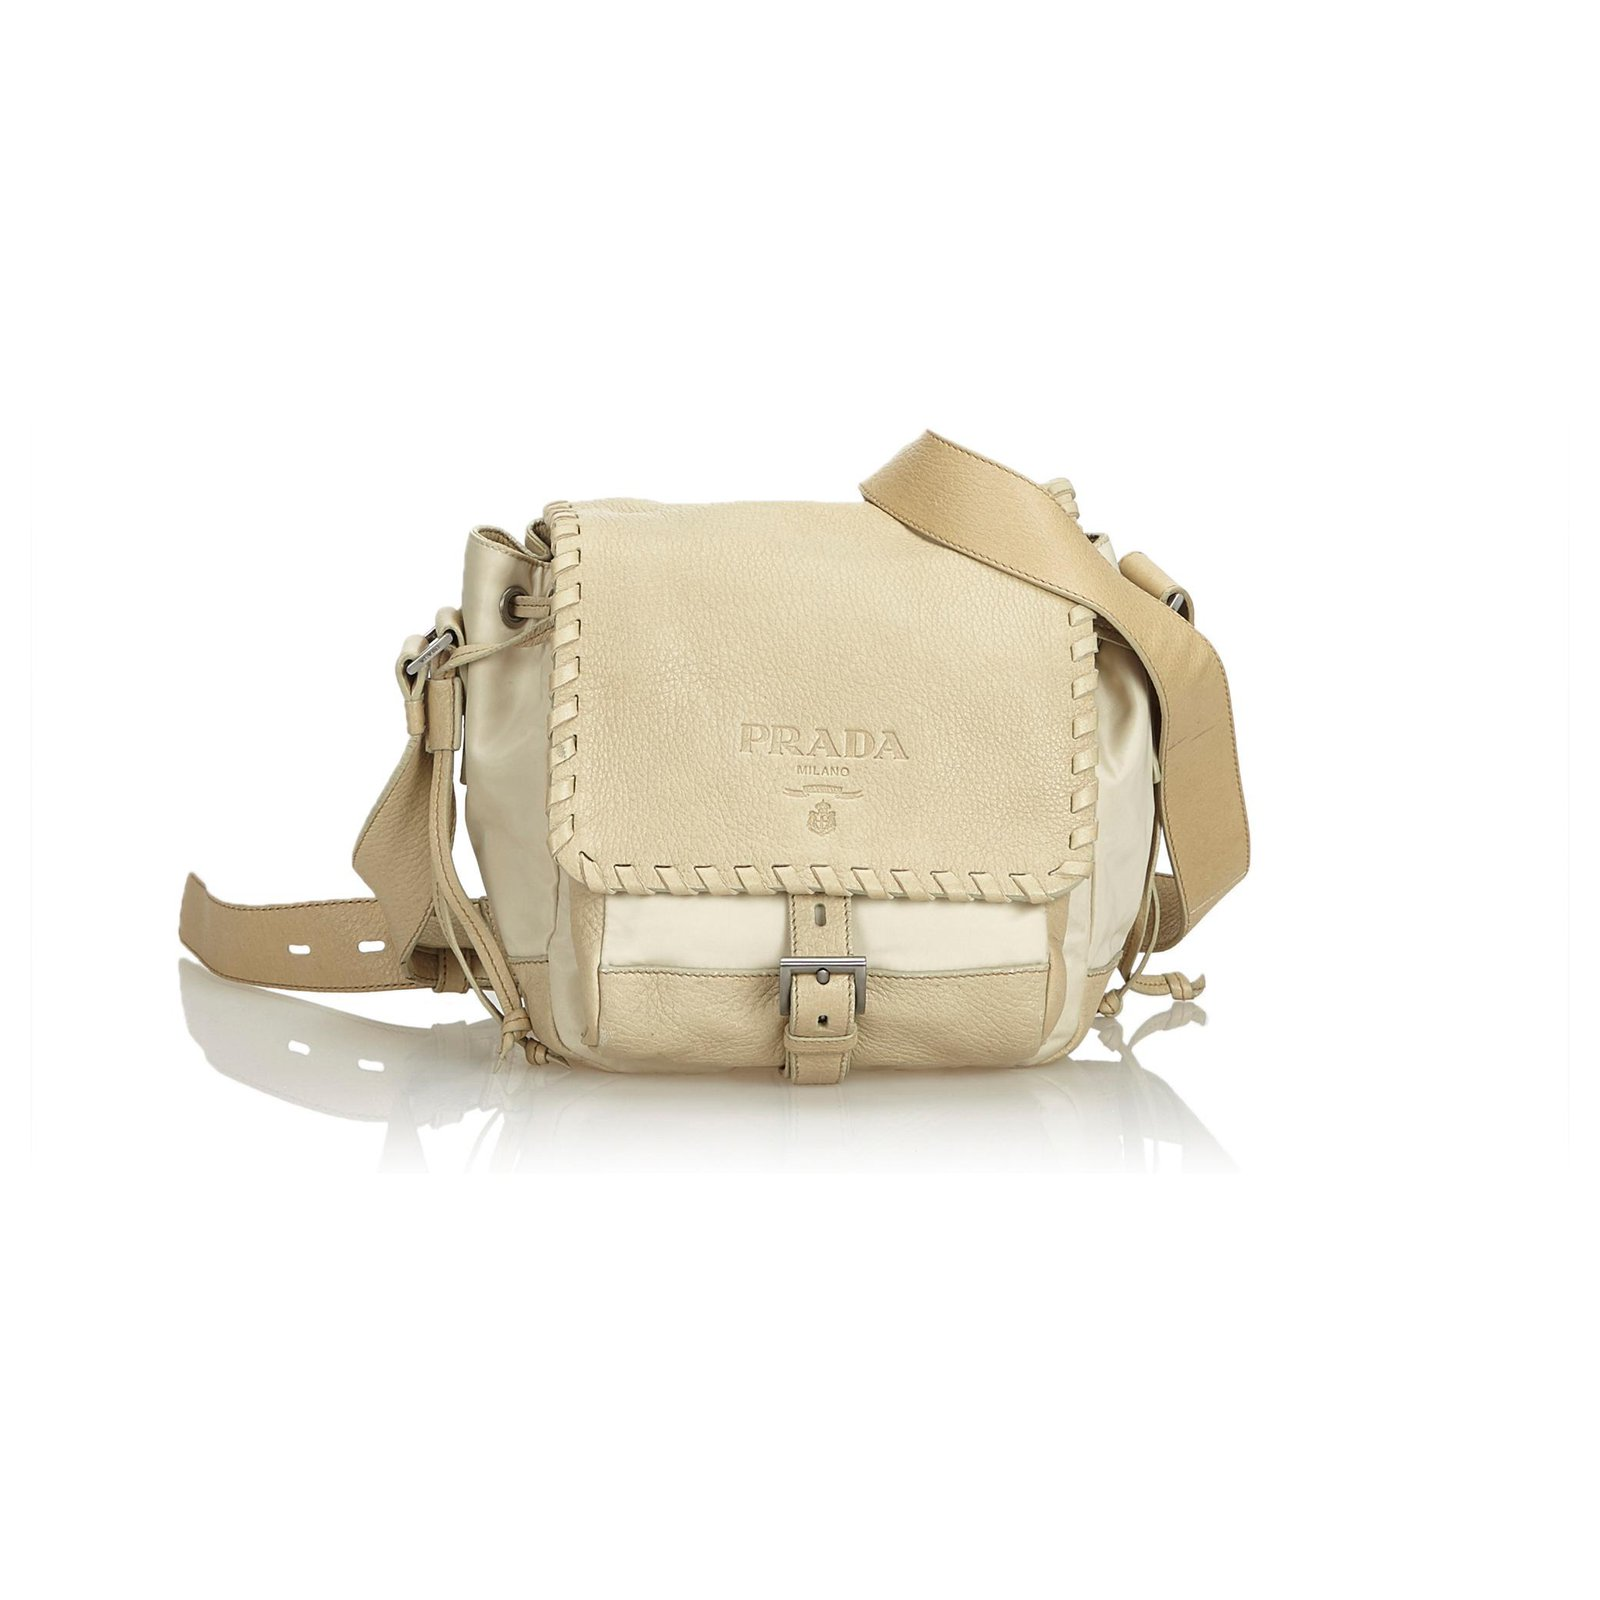 2c9e57c8e4e5 Prada Prada White Nylon Crossbody Bag Handbags Leather,Other,Nylon,Cloth  Brown,